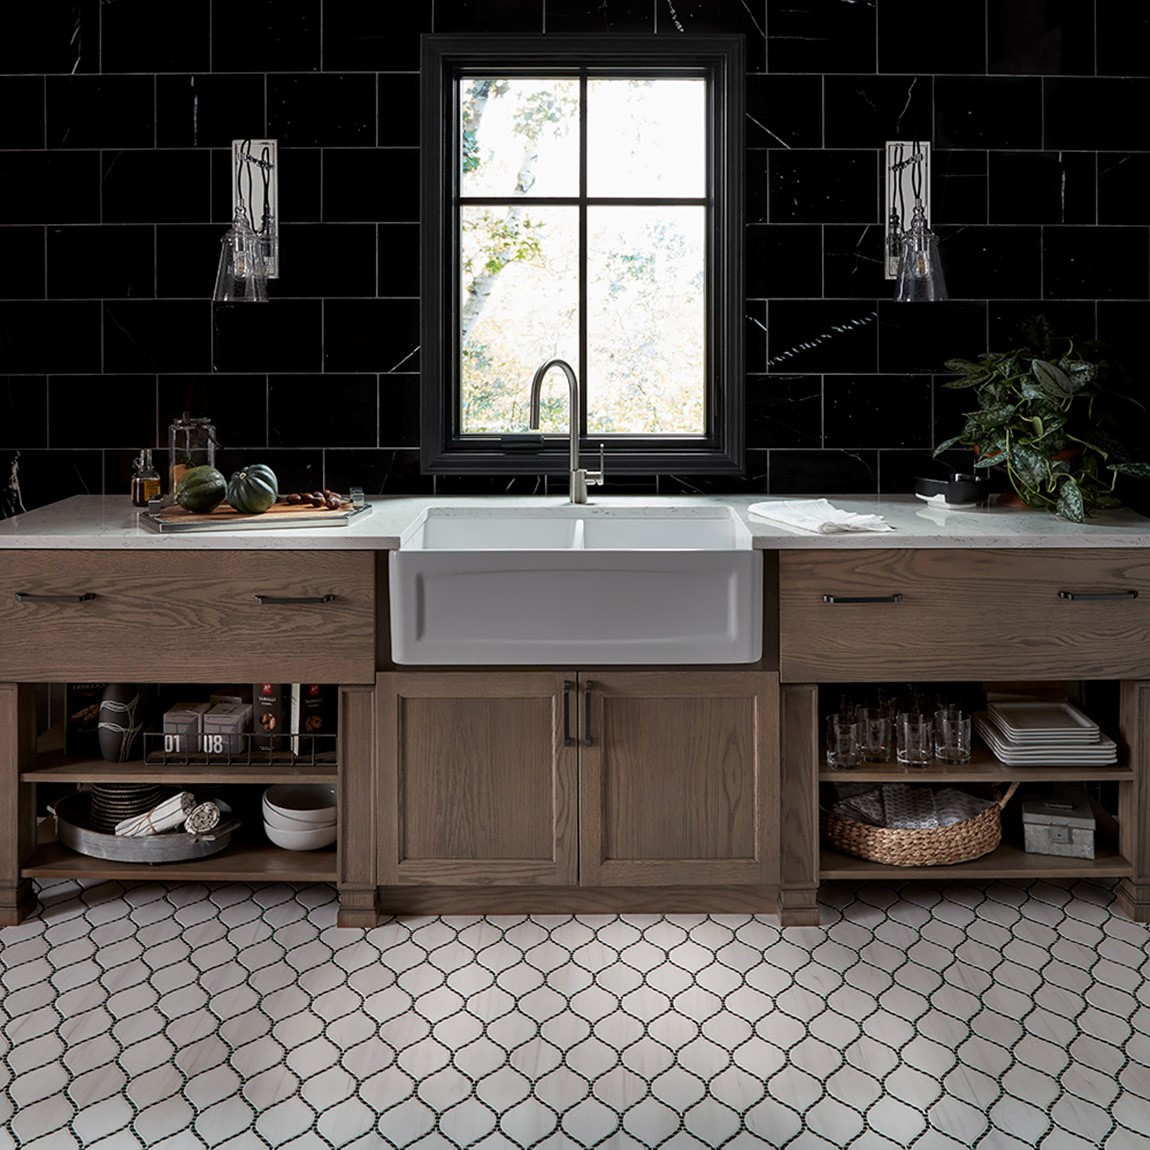 cafe style kitchen with mosaic tile